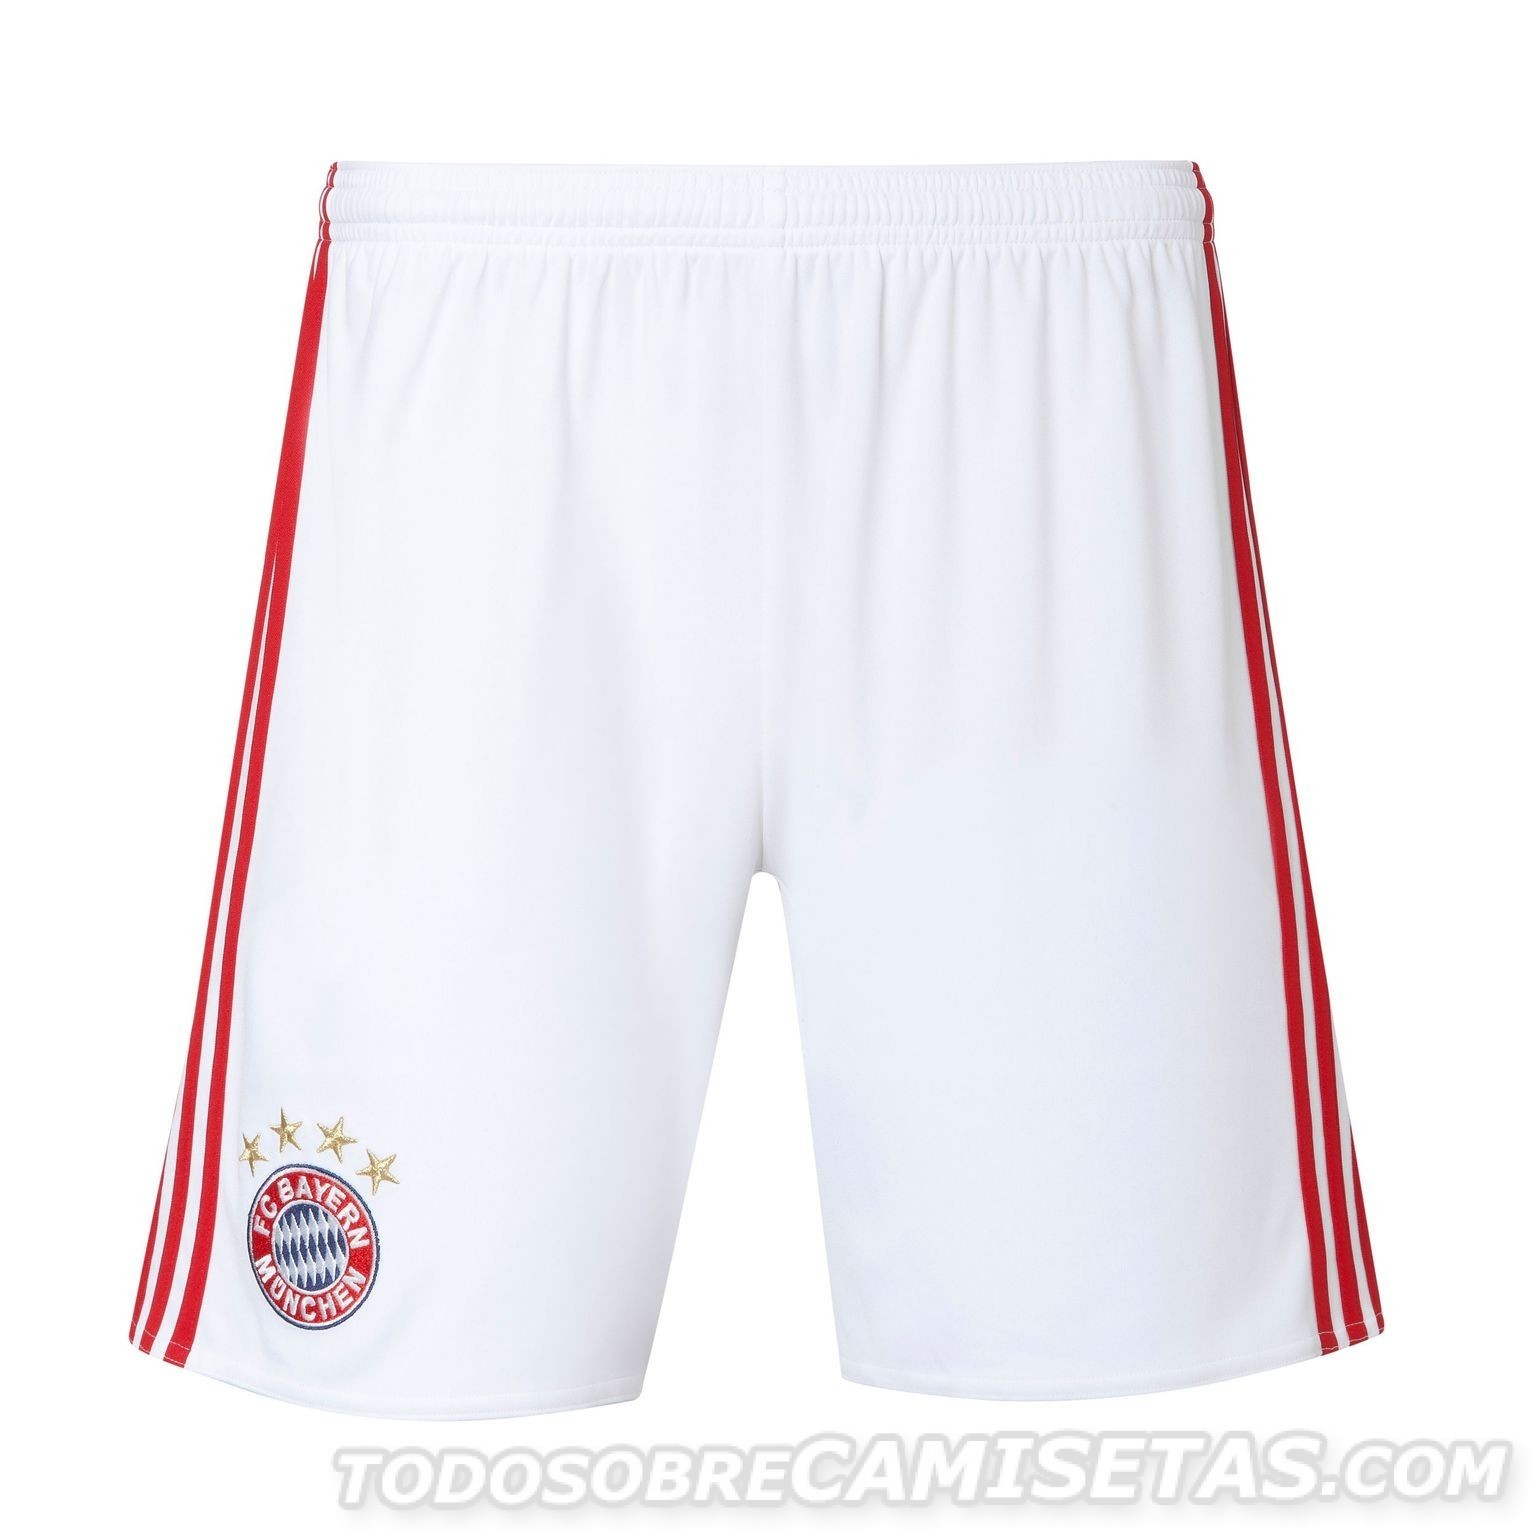 Bayern-Munich-2016-17-adidas-new-home-kit-9.jpg